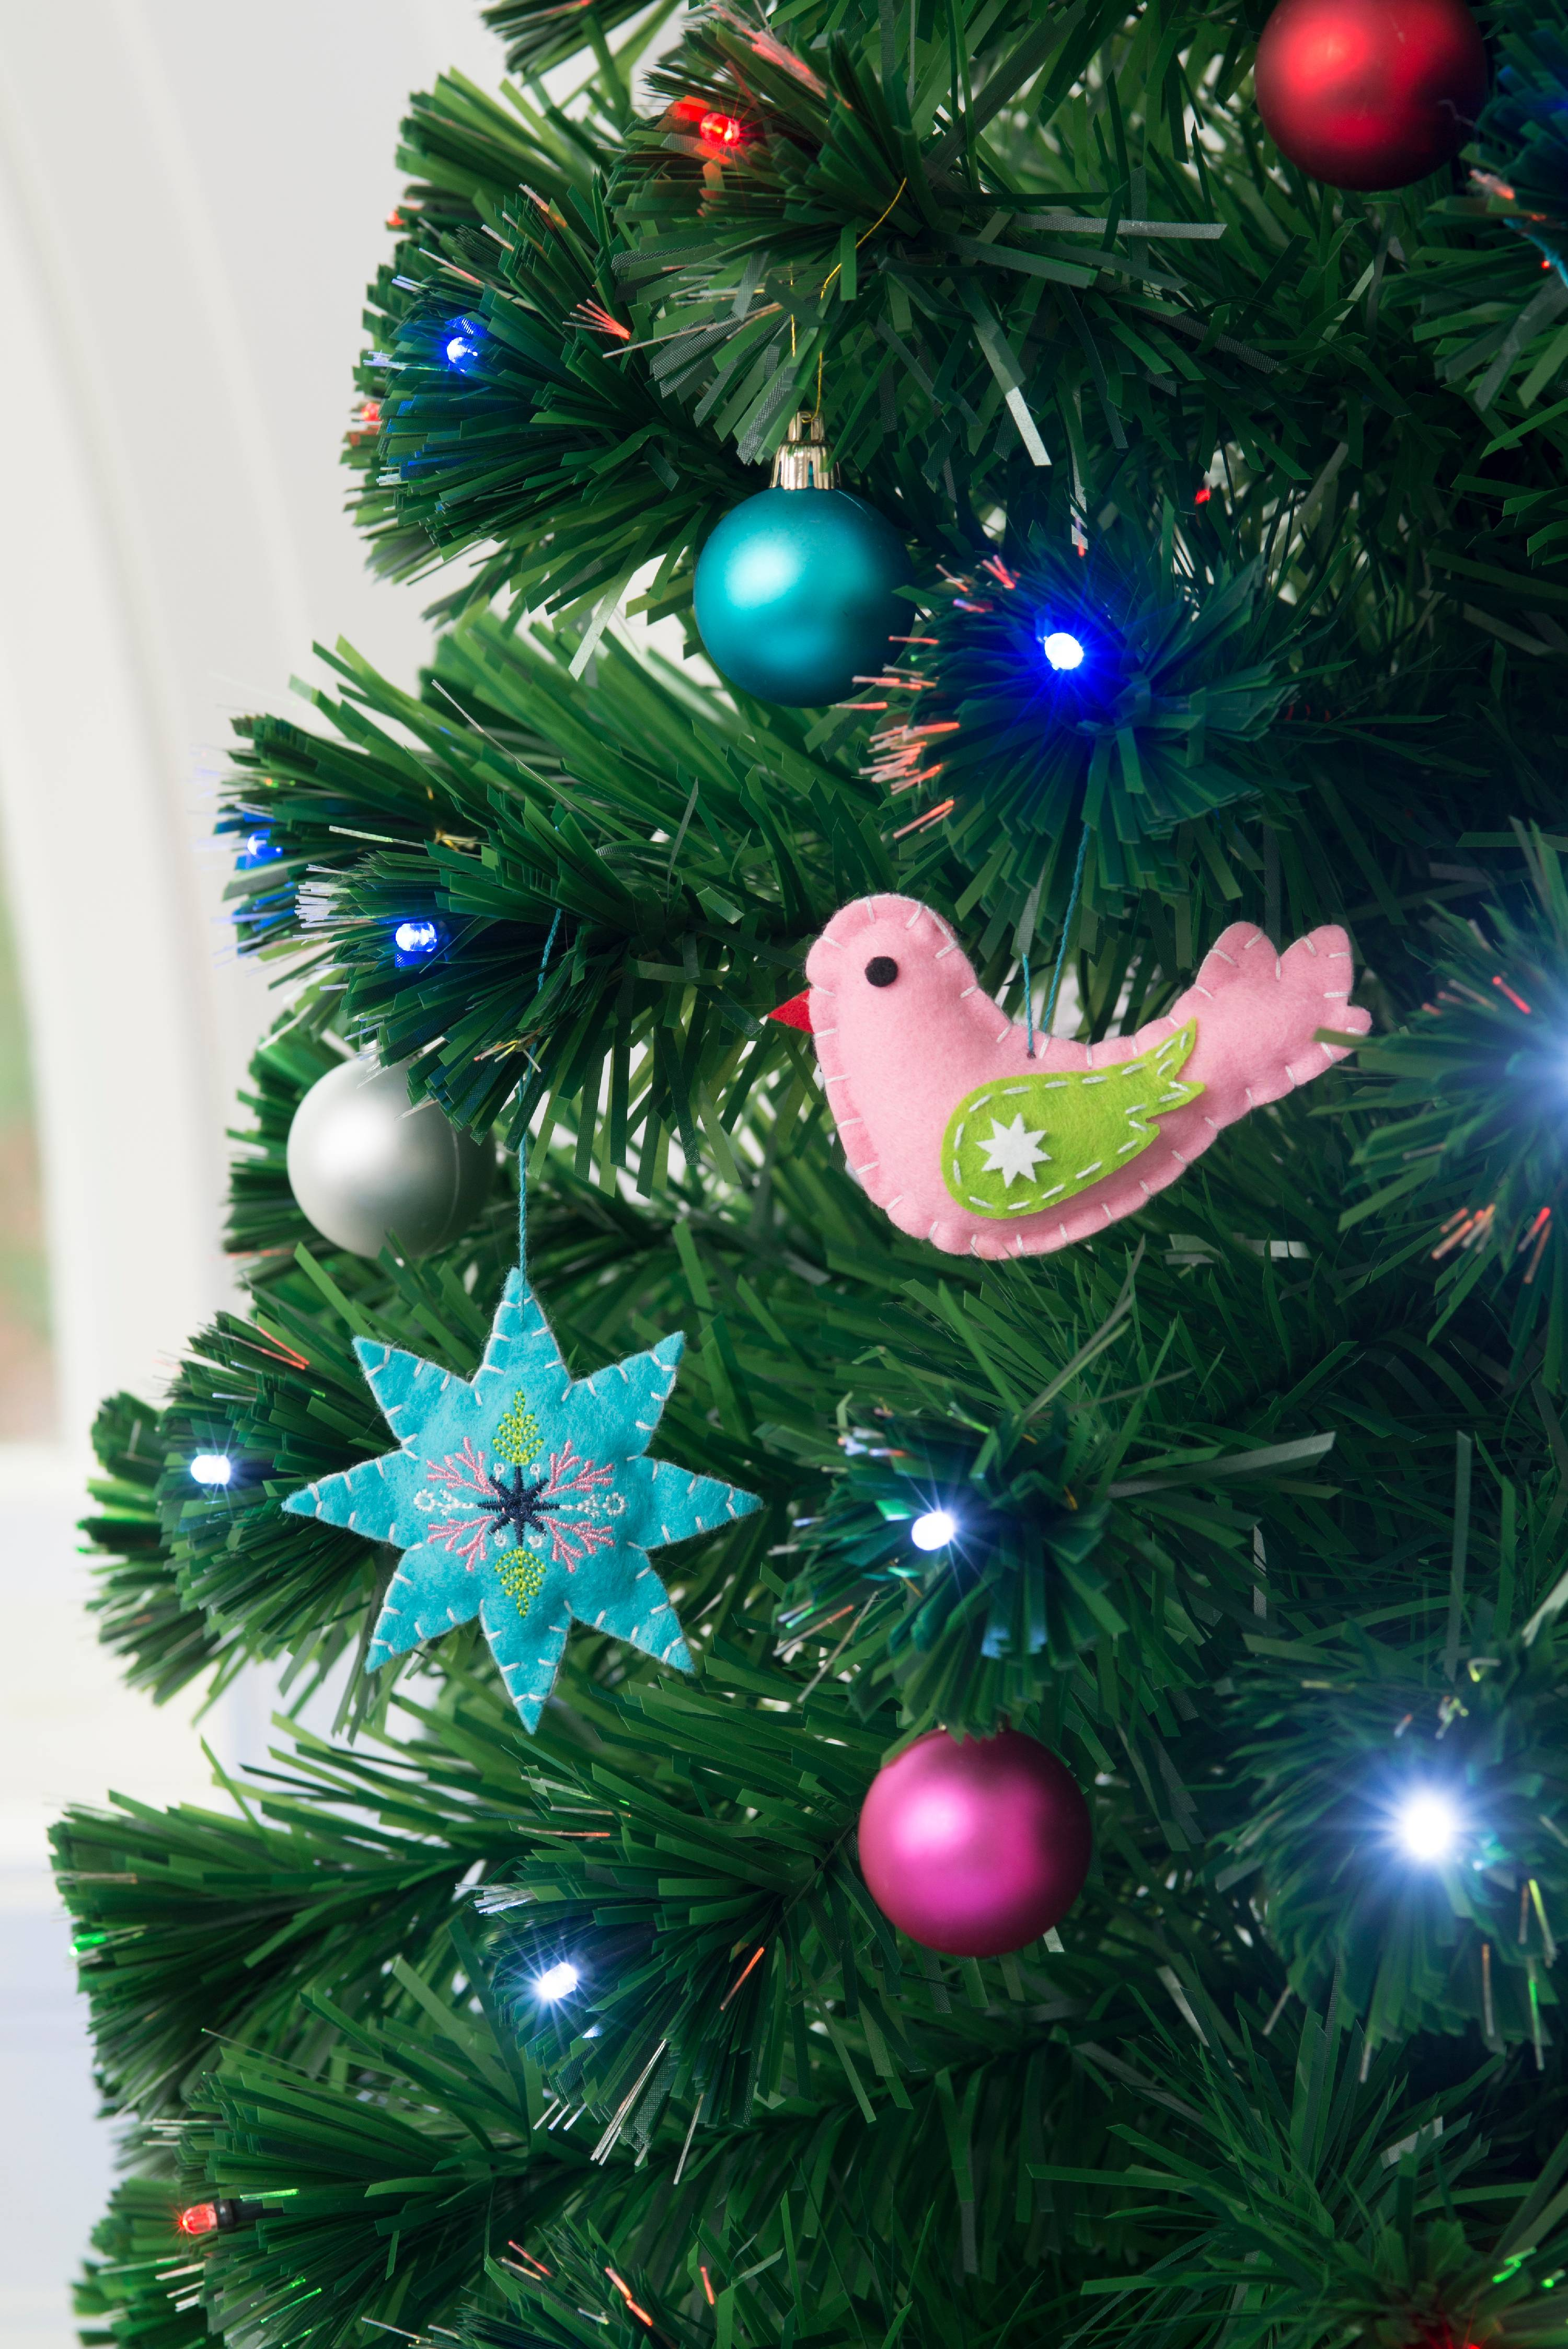 CF Collection Bird Christmas Tree Ornament Rose Gold with Glitter 4 Inches